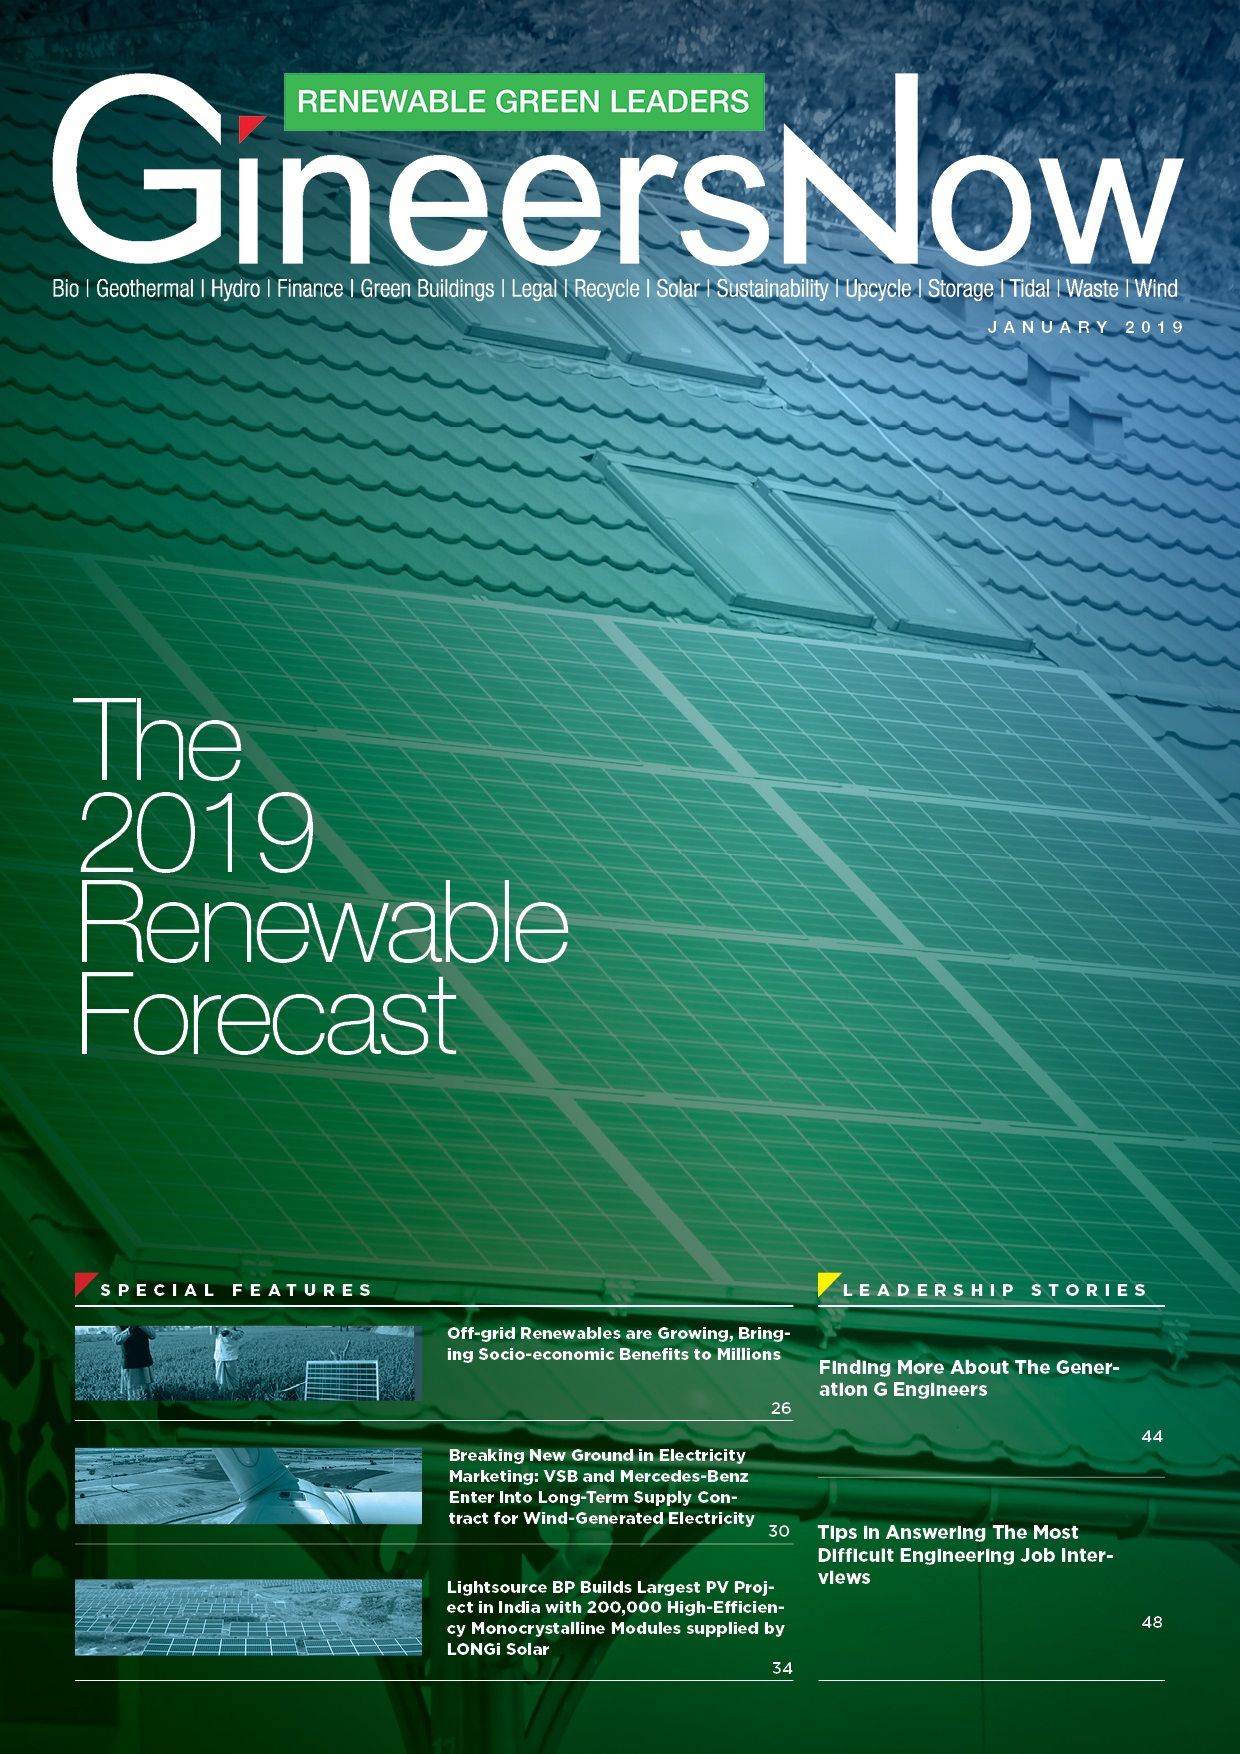 2019 Renewable Energy, Sustainability and Green Forecast